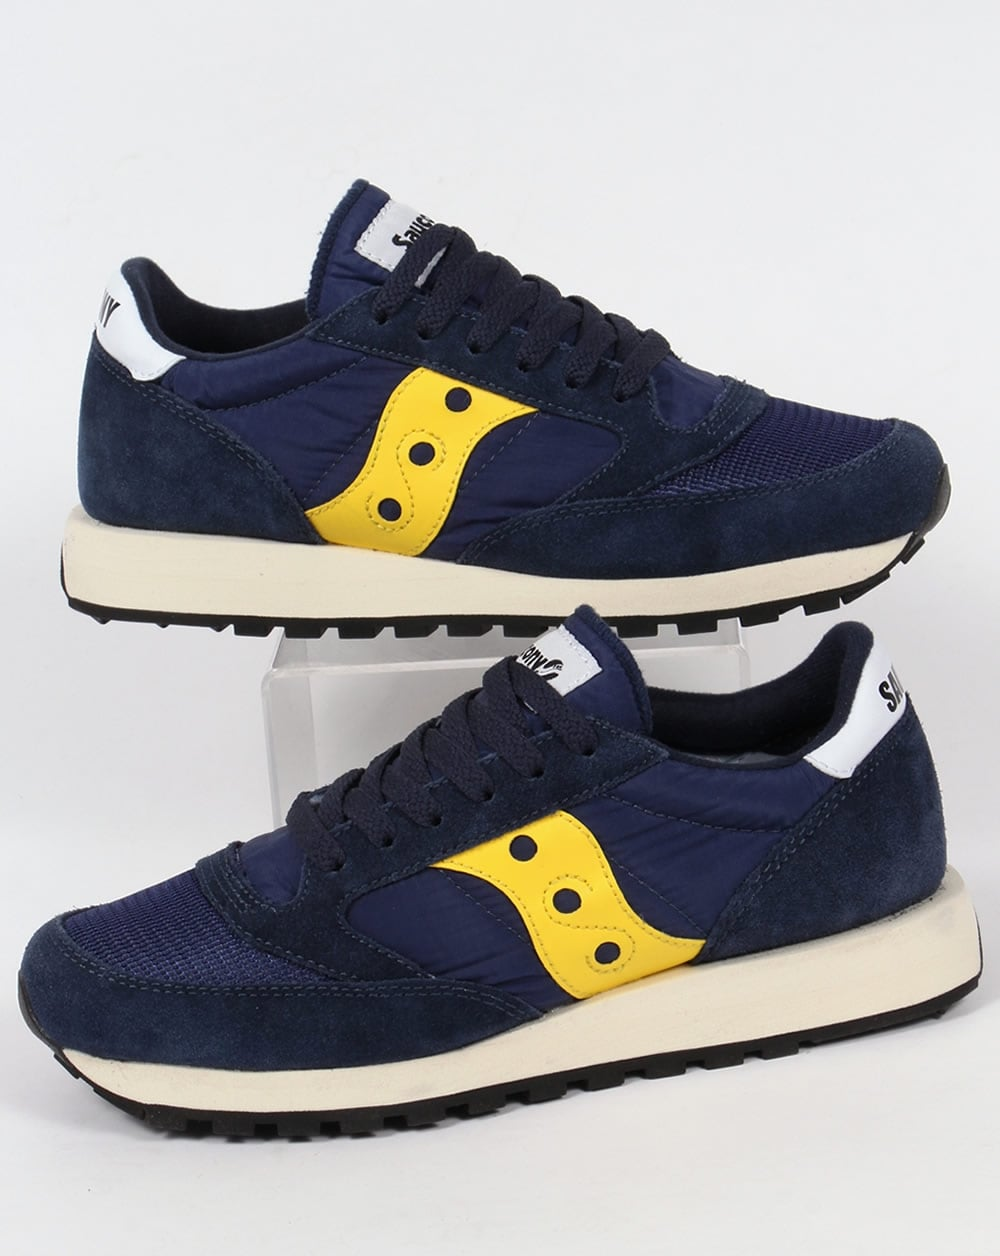 cb7c5d6dca4c Saucony Saucony Jazz Original Vintage Trainers Blue Yellow